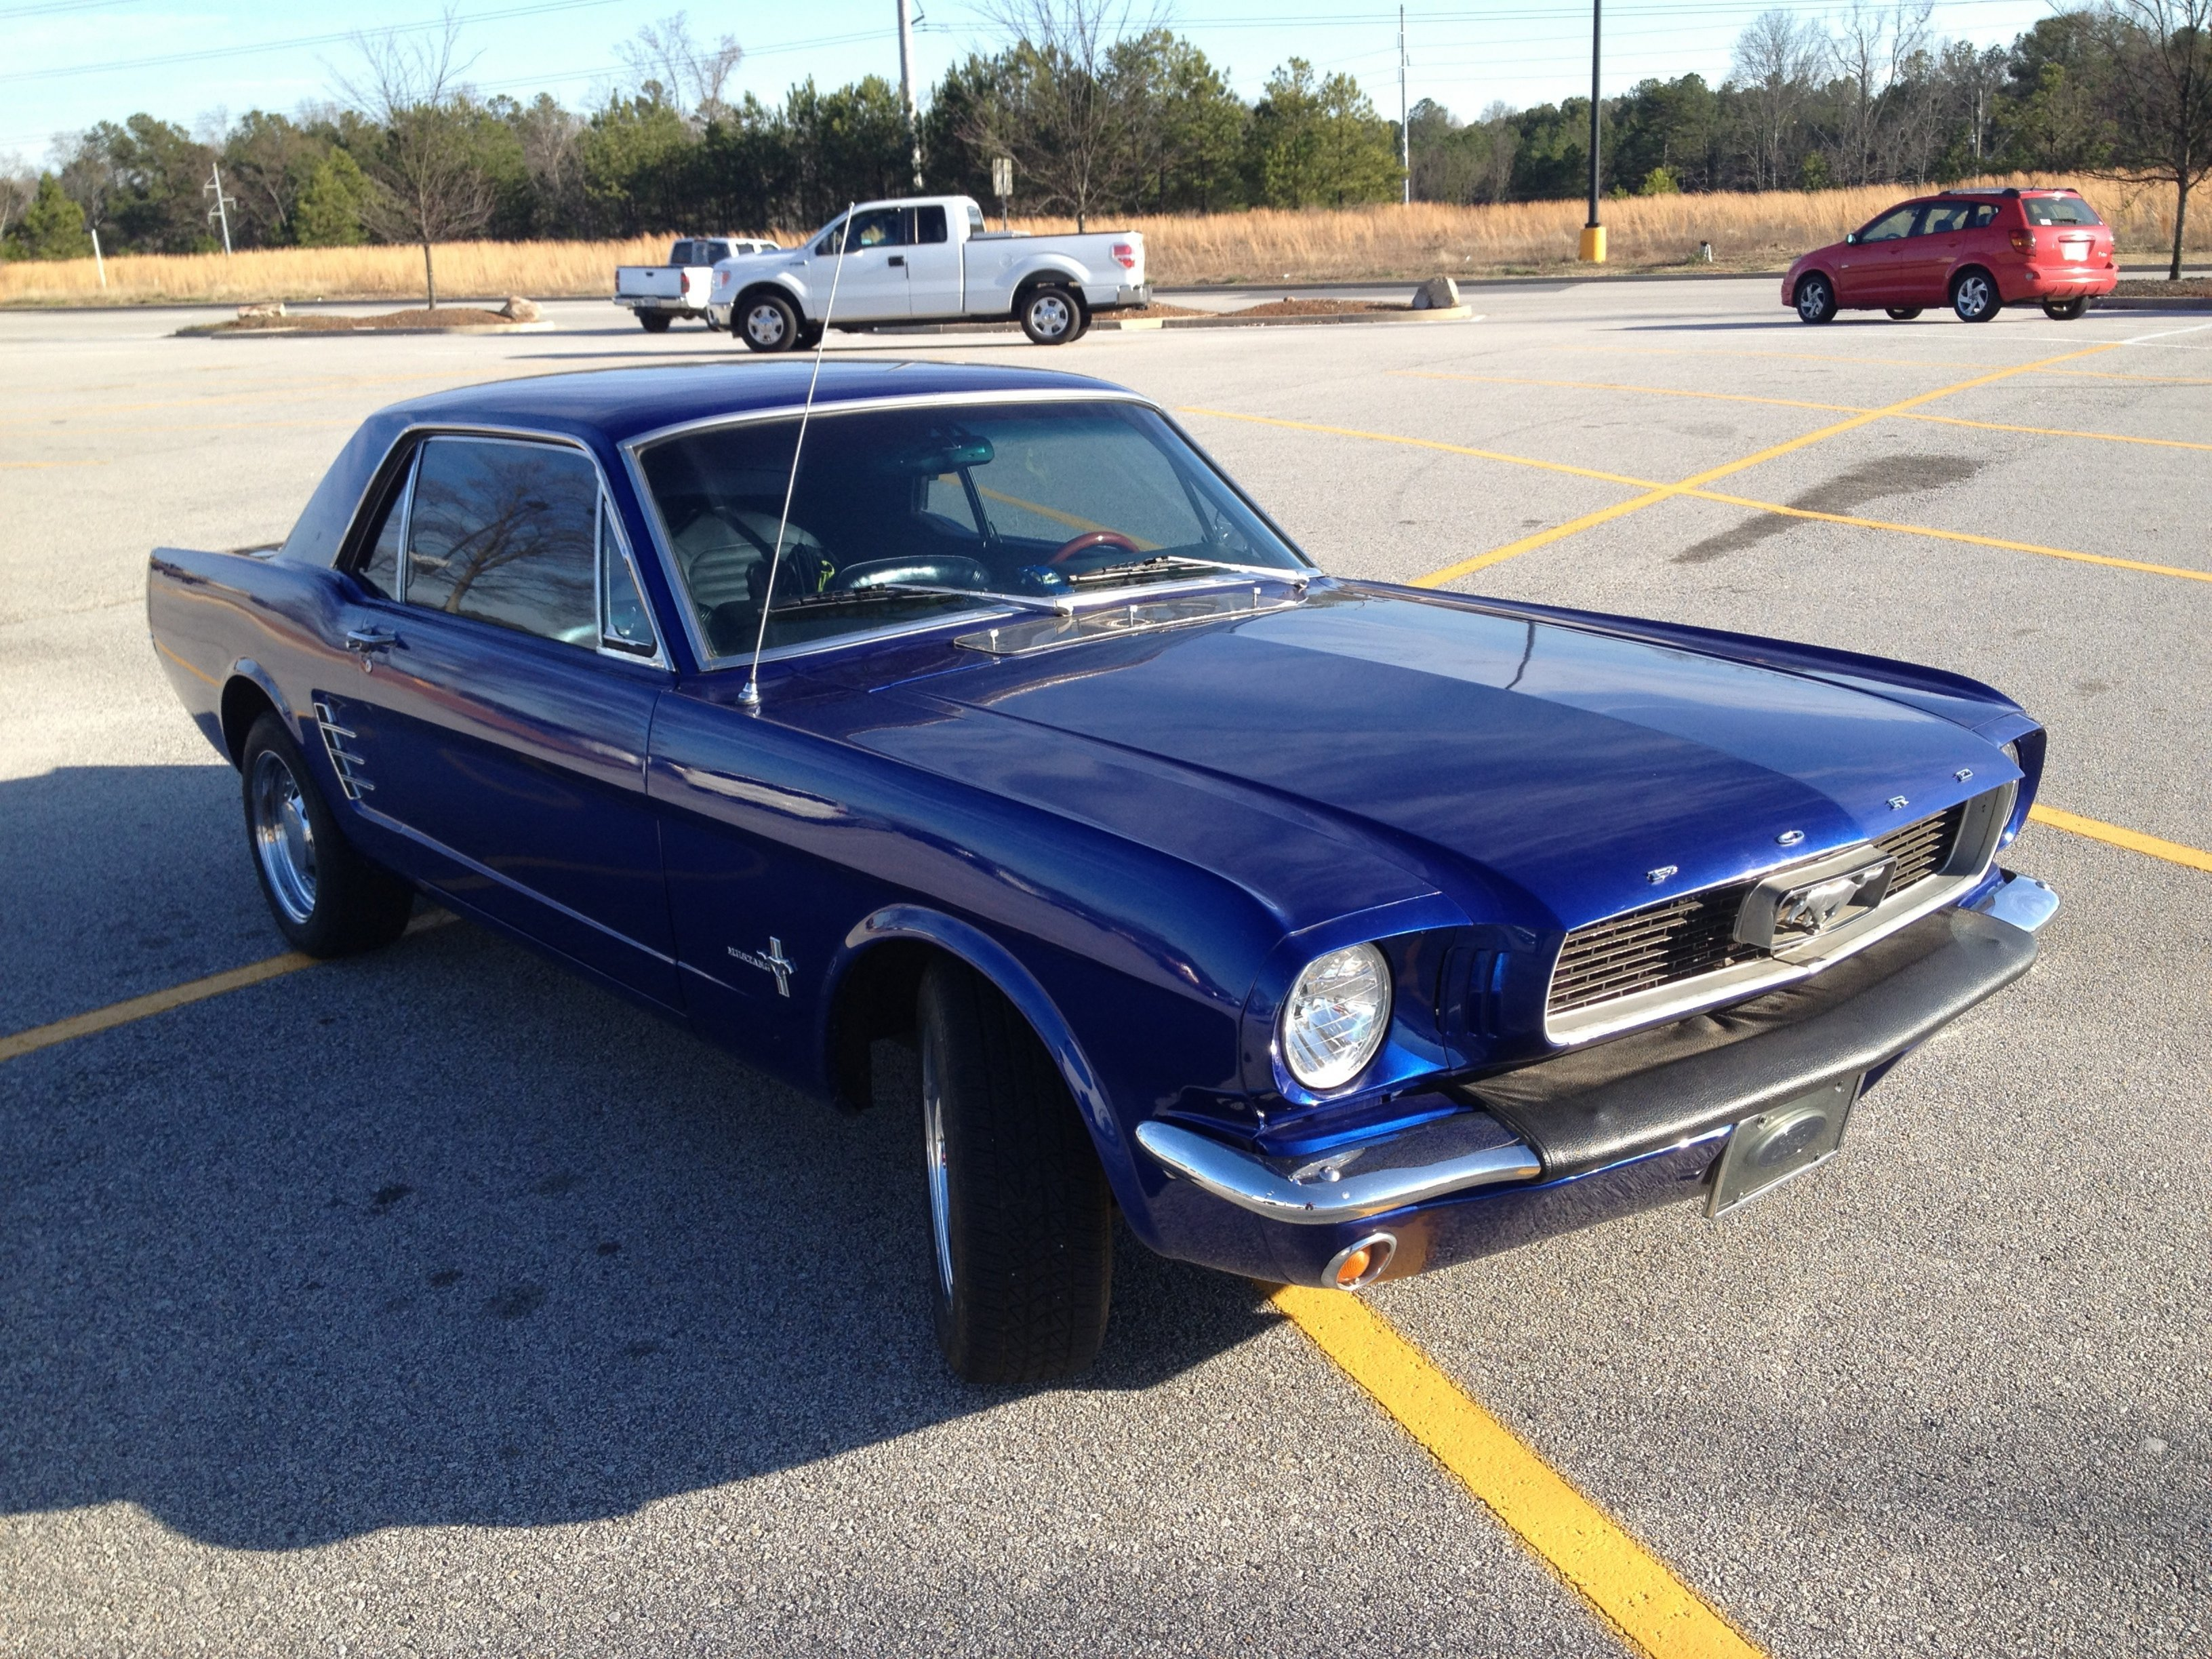 Click image for larger version  Name:classic Mustang2.jpg Views:205 Size:1.77 MB ID:135915